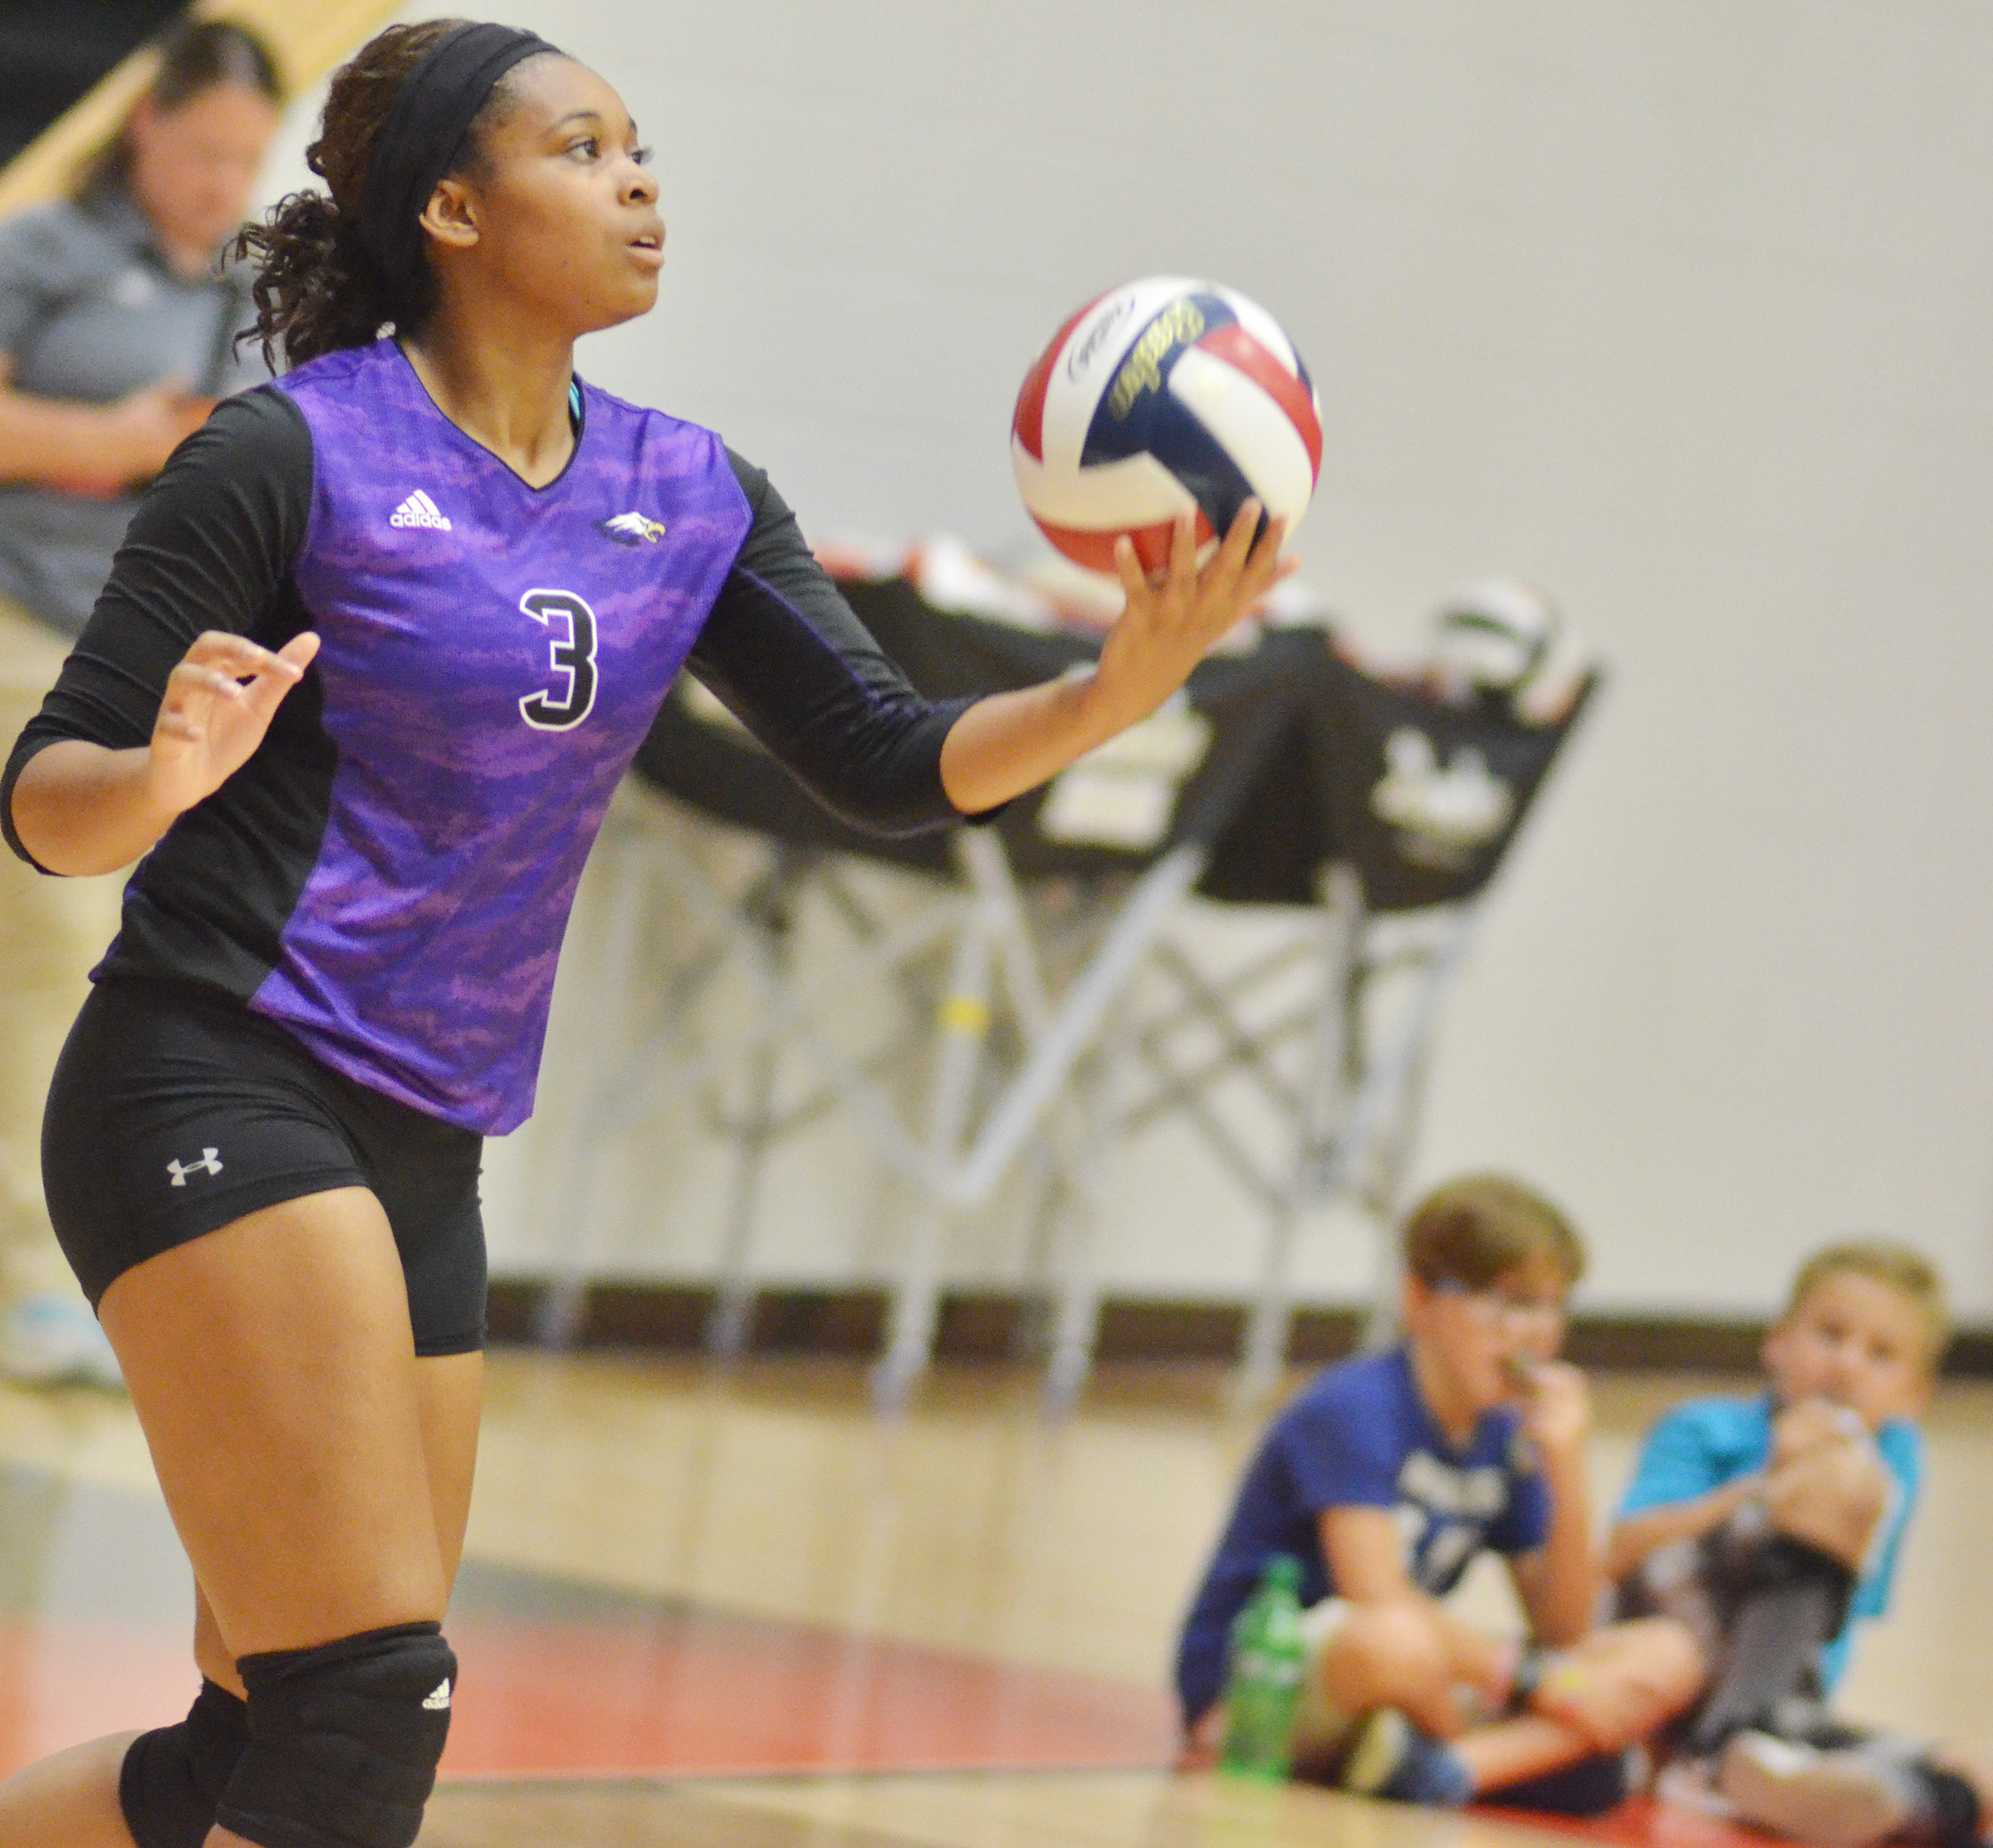 CHS senior Vonnea Smith serves.